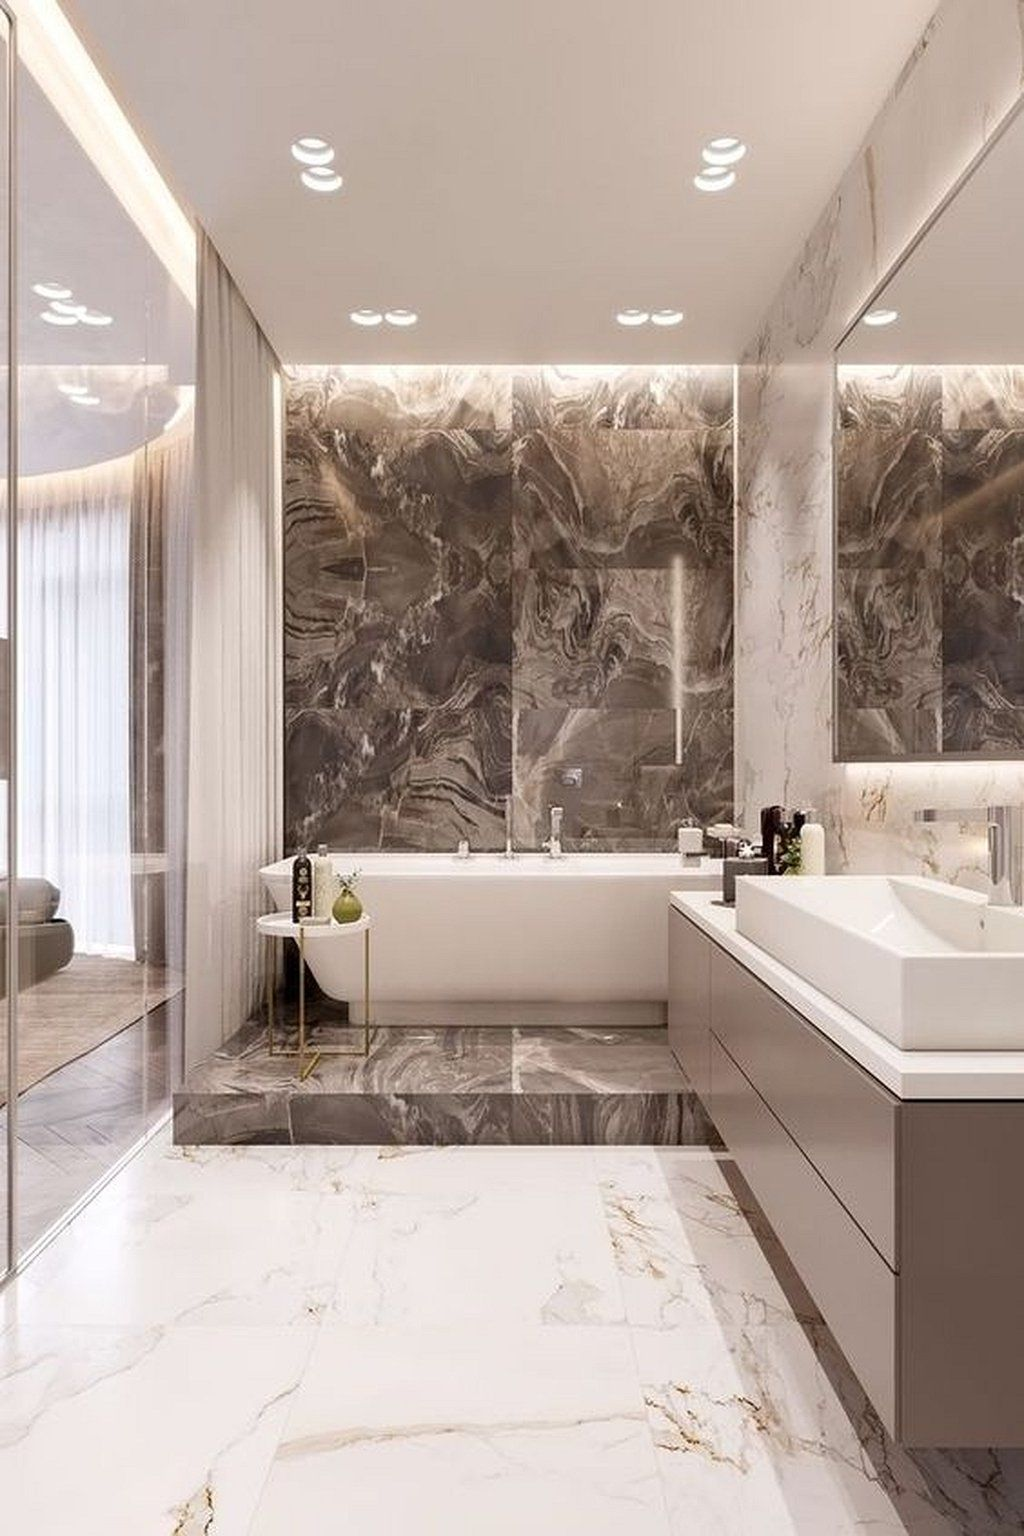 Interior Design In 2020 Bathroom Inspiration Modern Bathroom Design Luxury Bathroom Interior Design